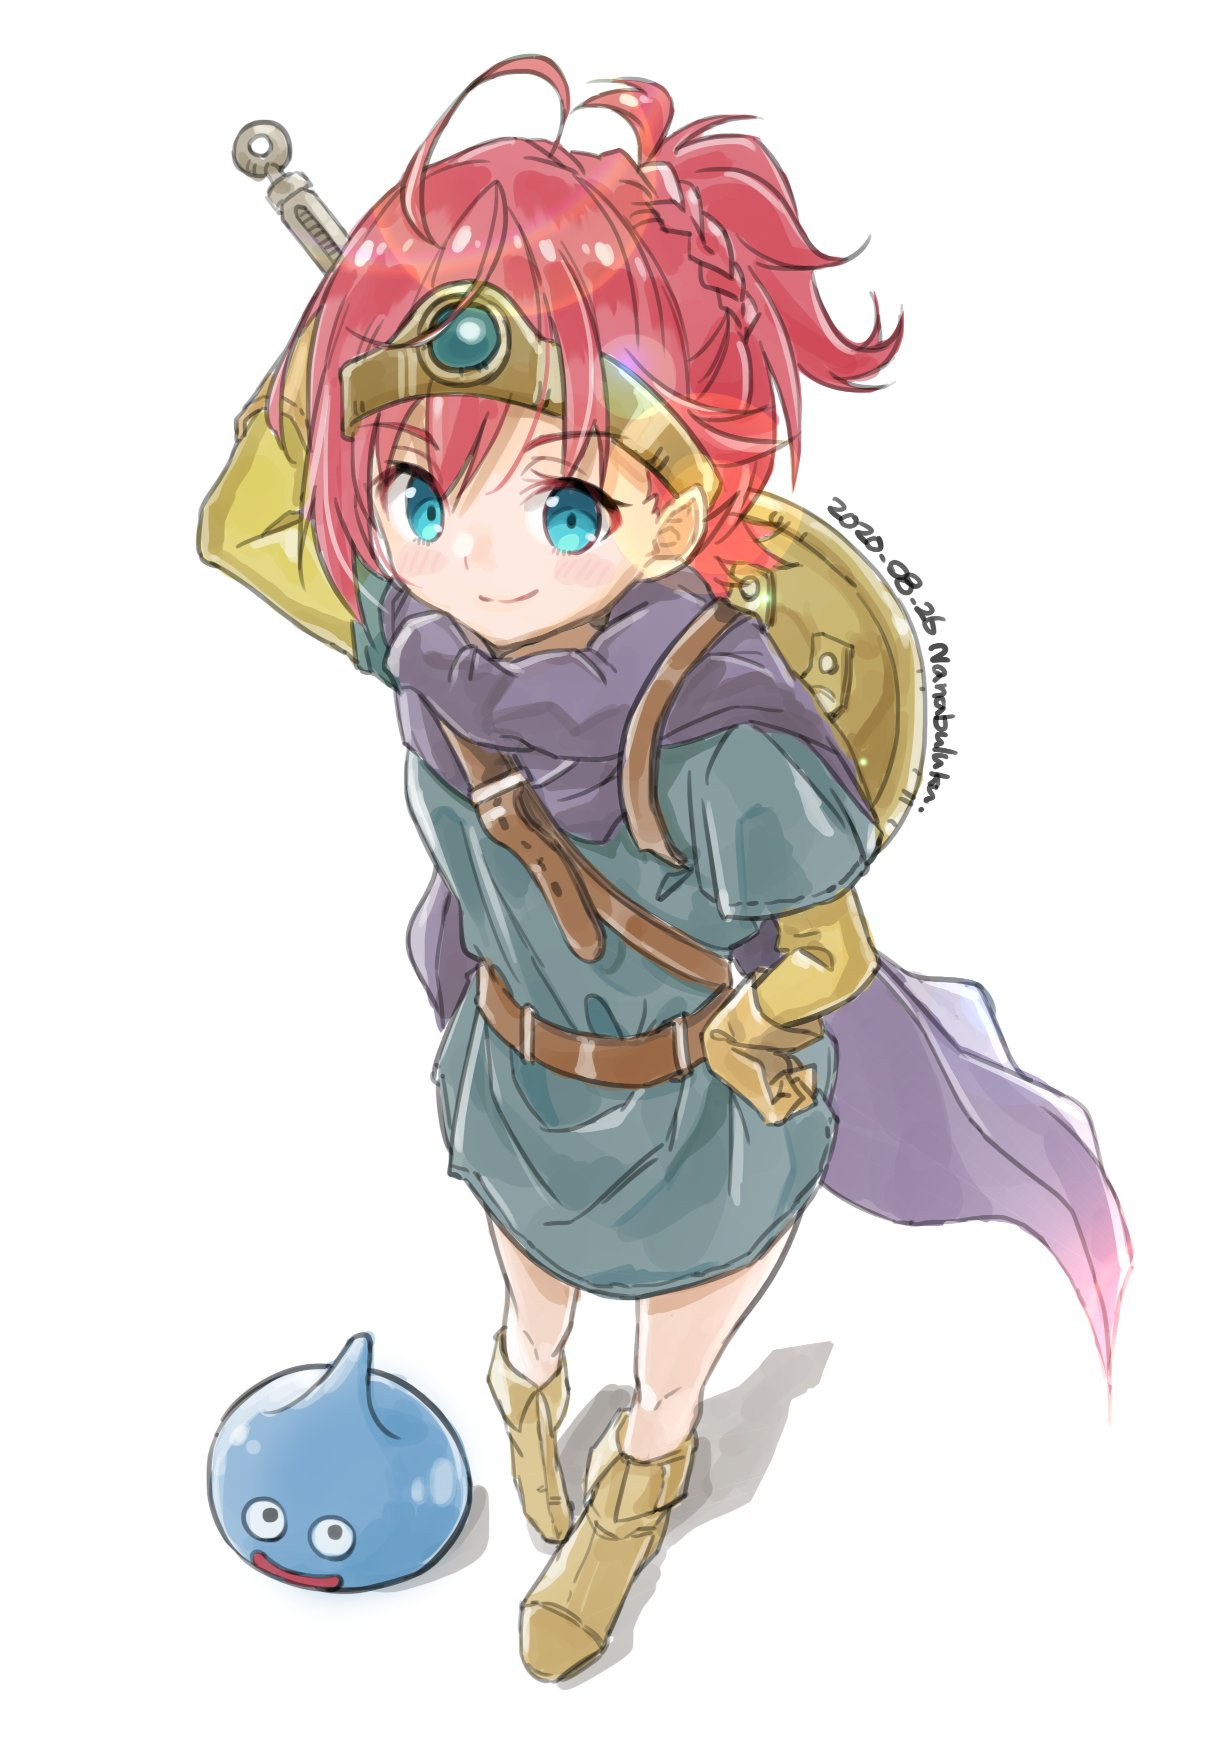 1girl ankle_boots asahina_akane_(nijisanji) blue_dress blue_eyes boots braid cape closed_mouth dated dragon_quest dress hand_on_hip highres holding holding_sword holding_weapon looking_at_viewer nanabuluku nijisanji ponytail purple_cape redhead shield signature simple_background slime_(dragon_quest) smile solo standing sword weapon white_background